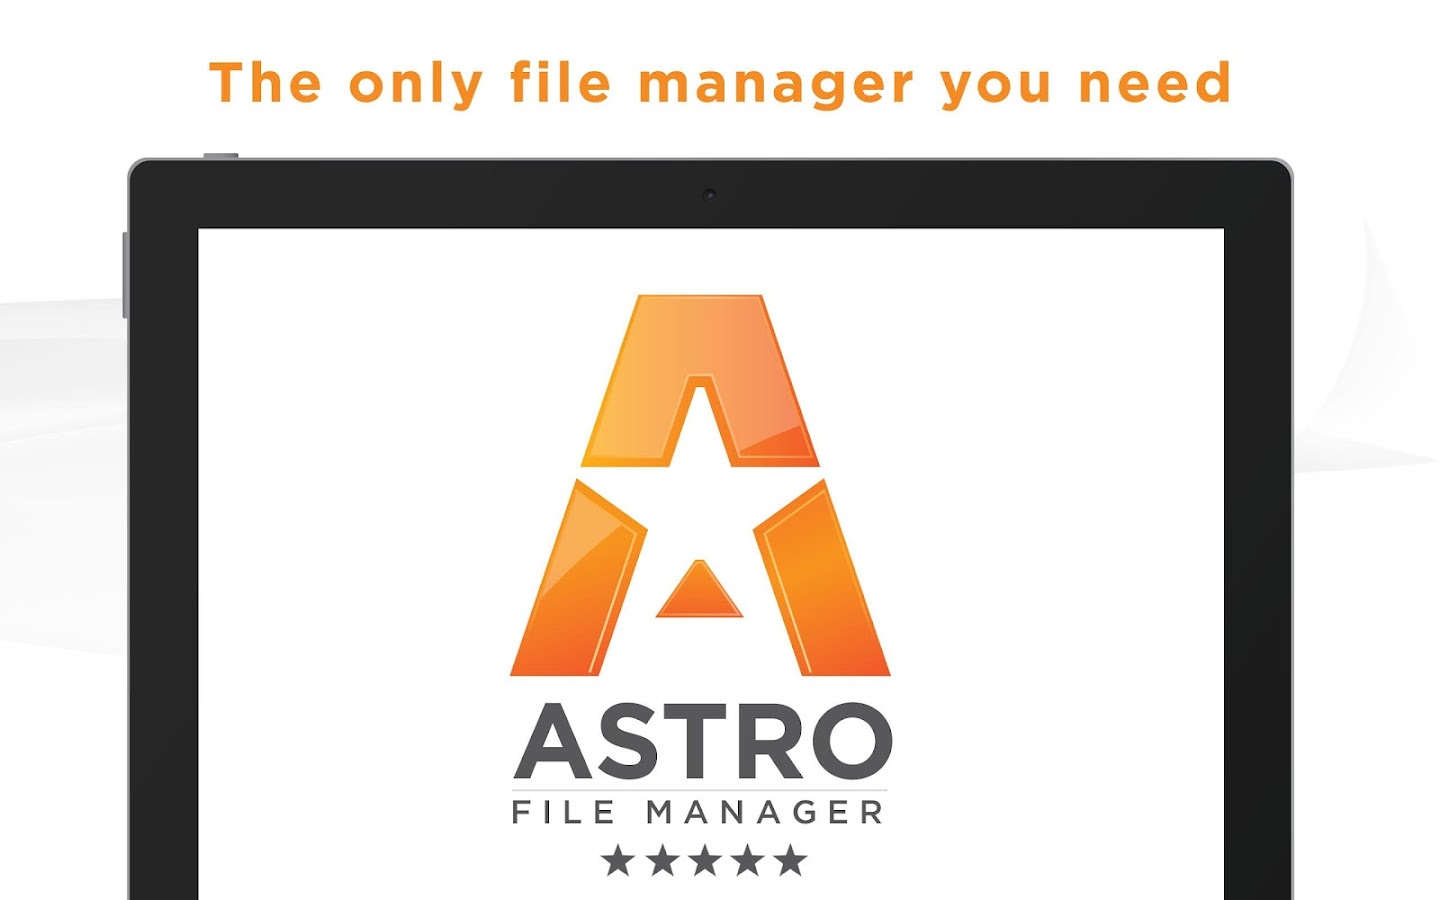 astro file manager android apps on google play astro file manager screenshot